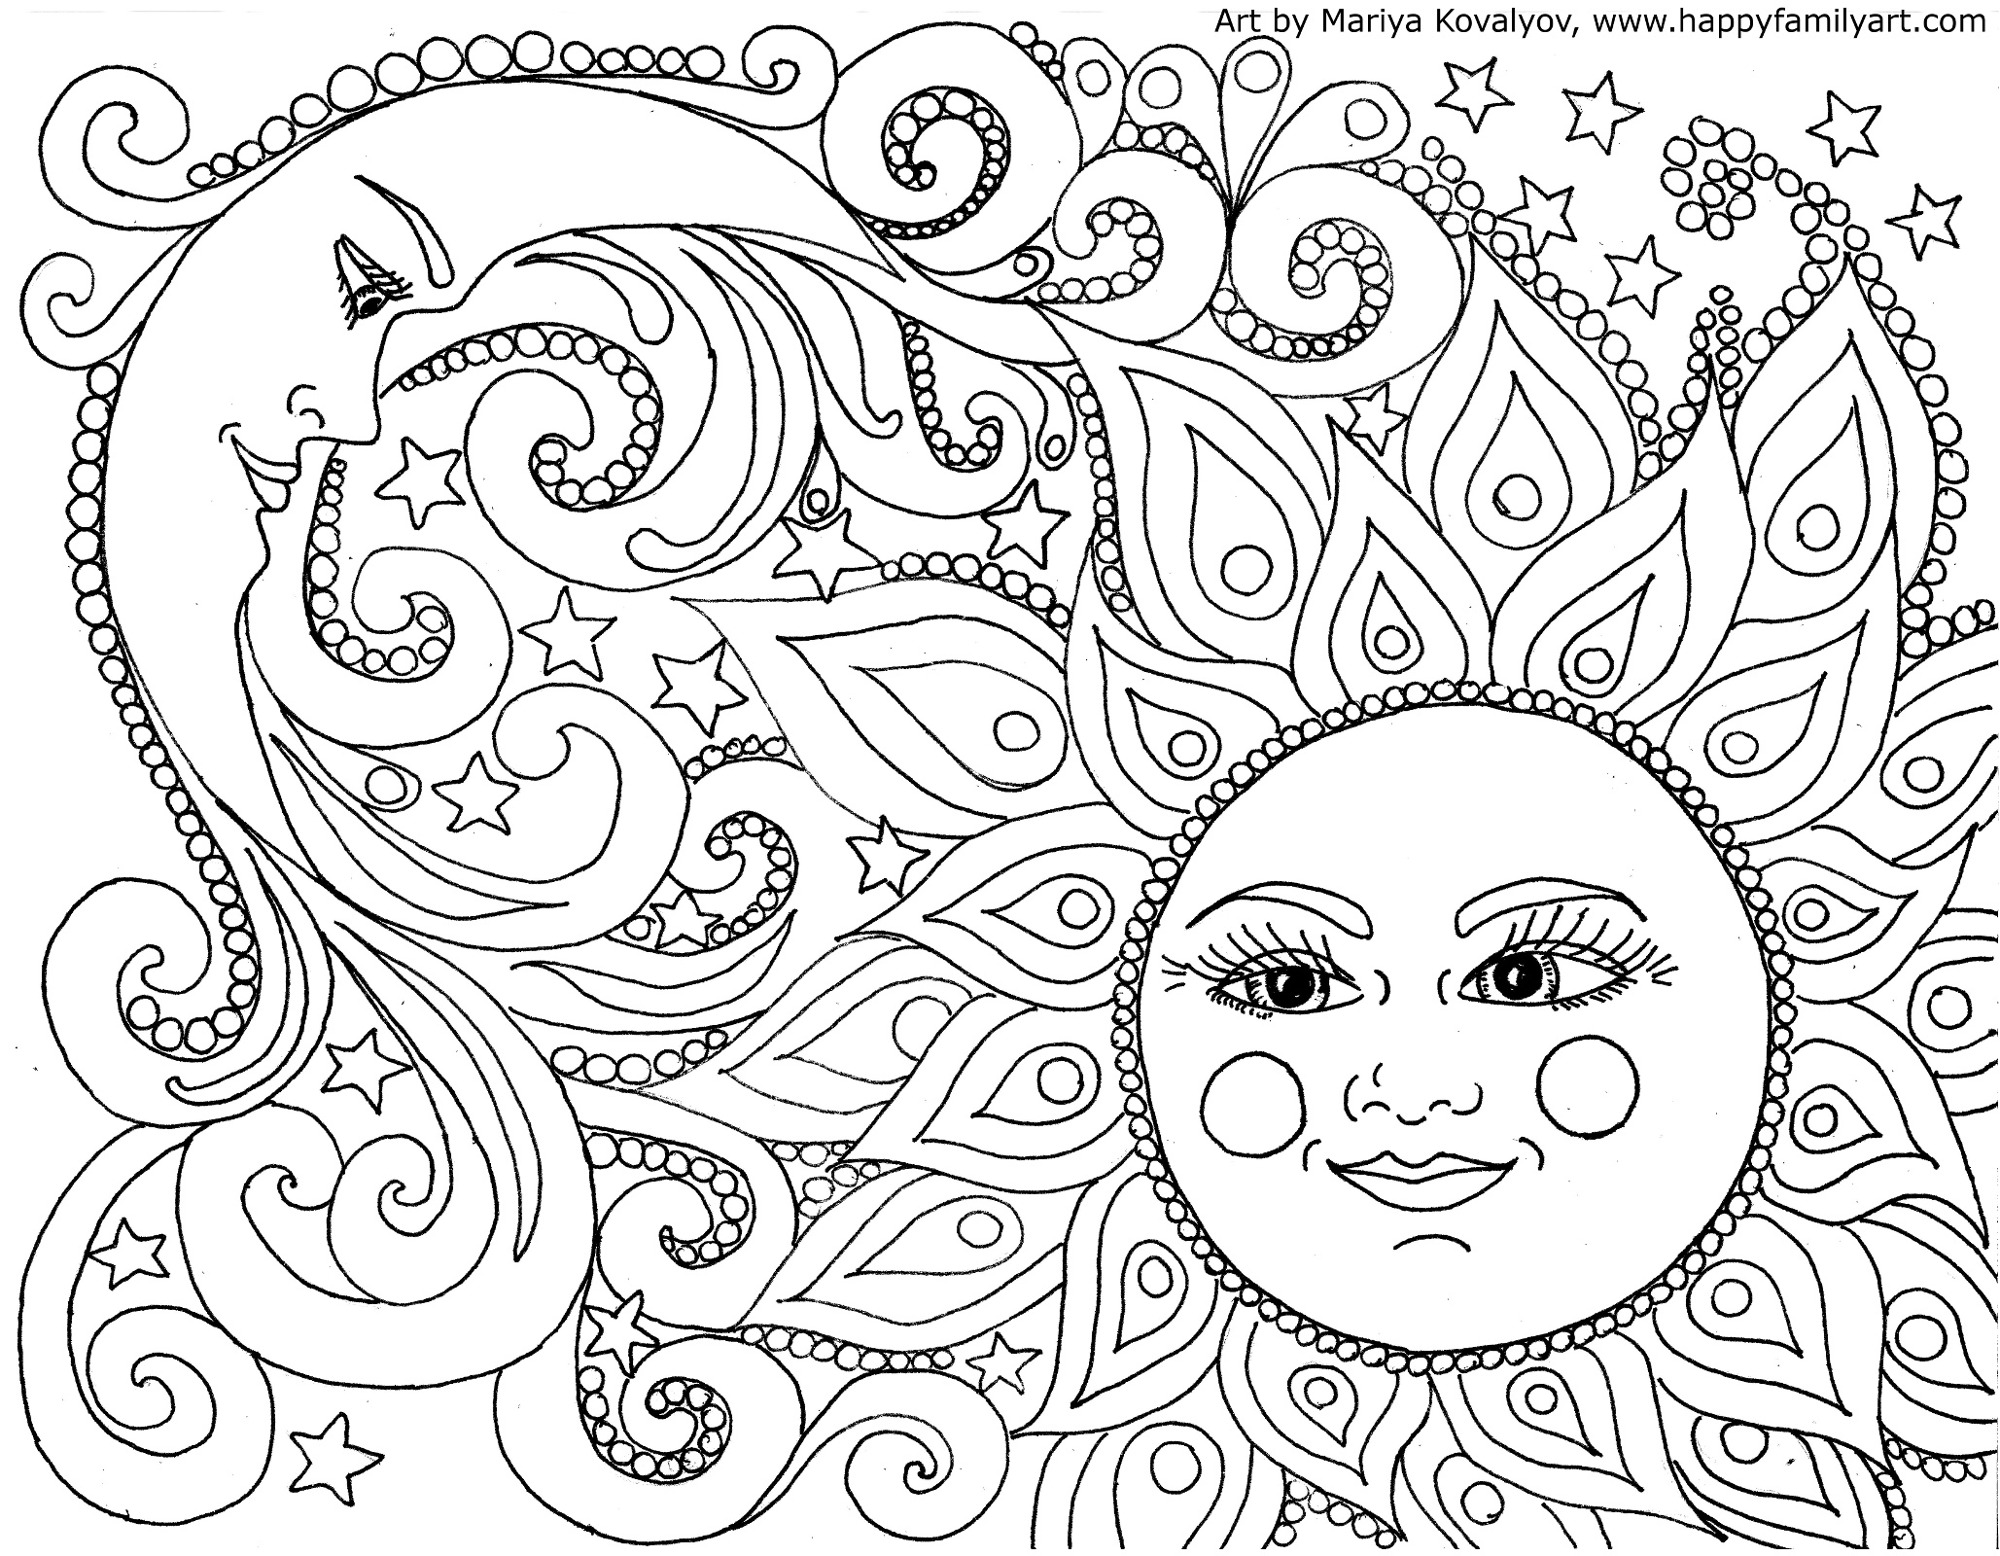 face coloring pages adults - photo#40